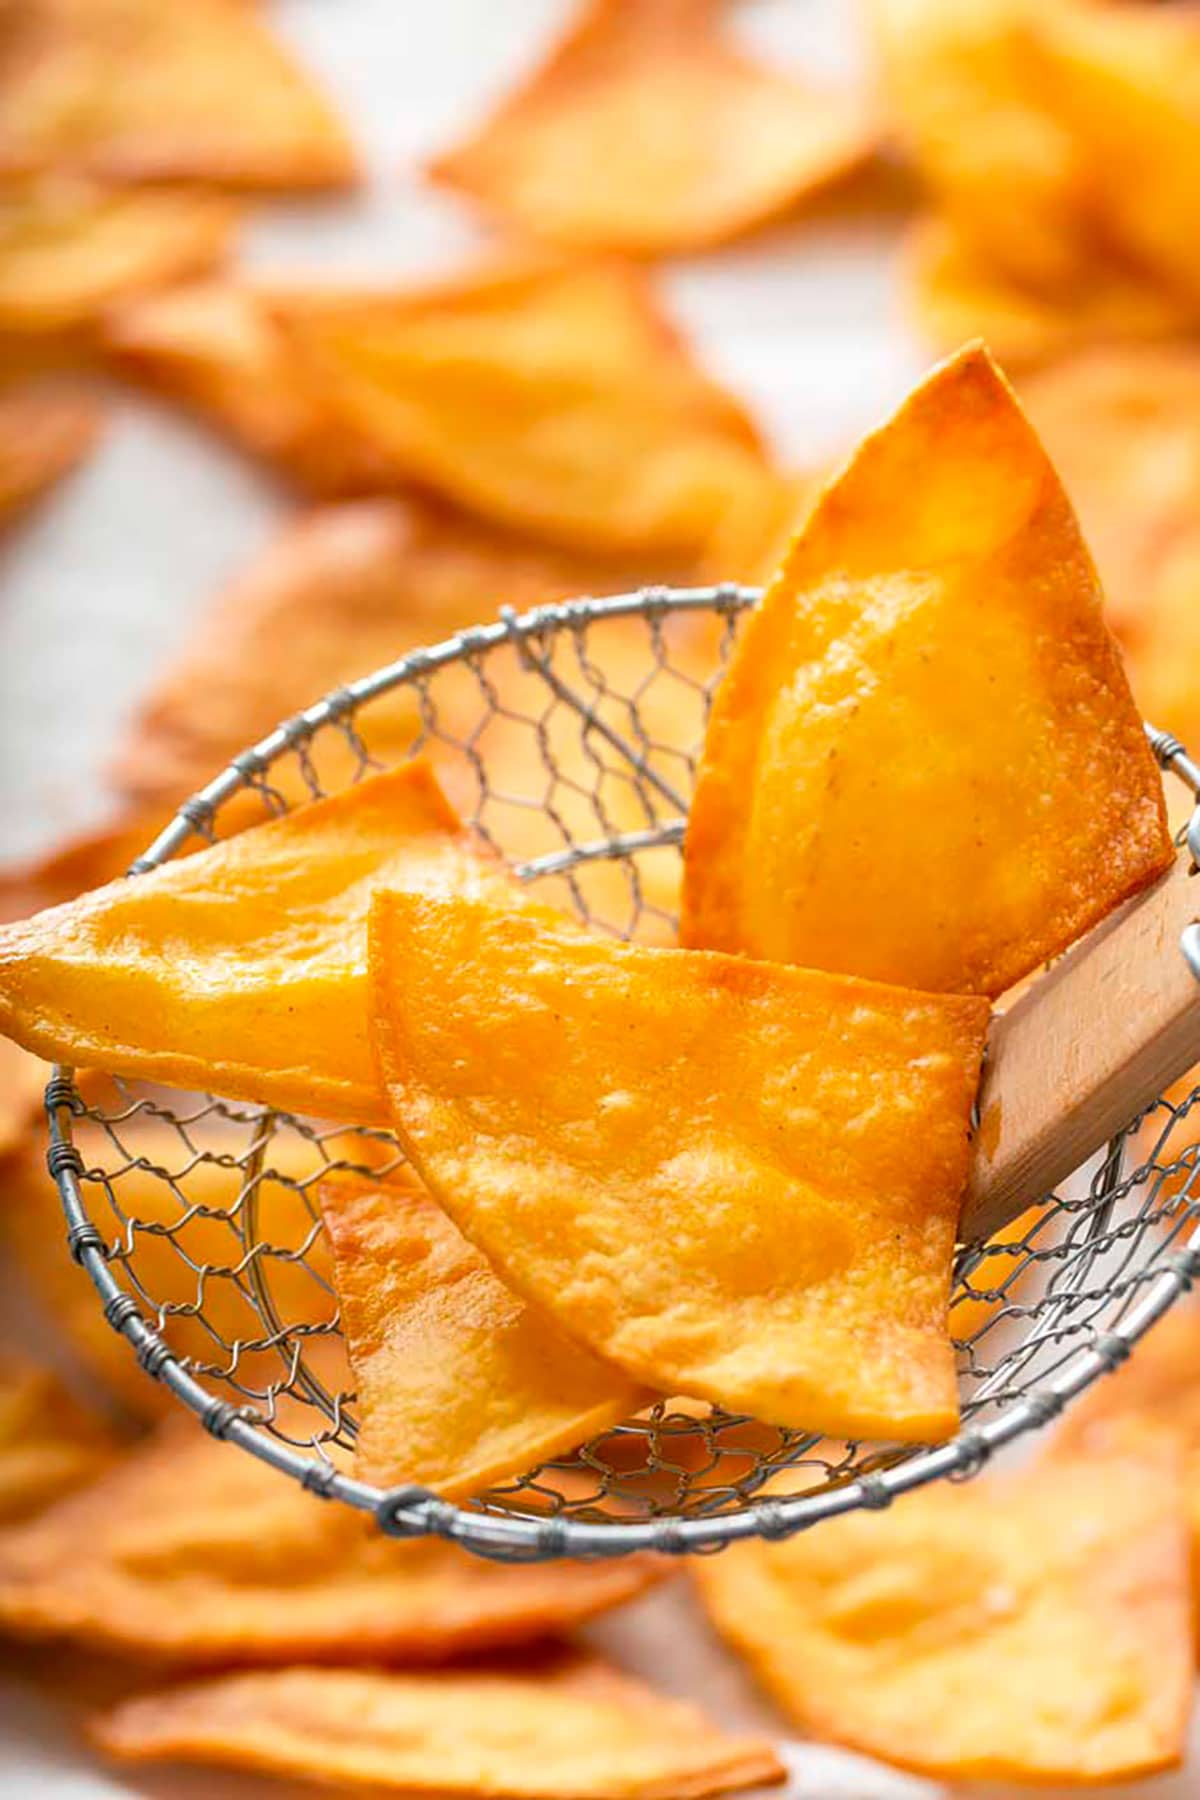 Tortilla chips scooped by a strainer